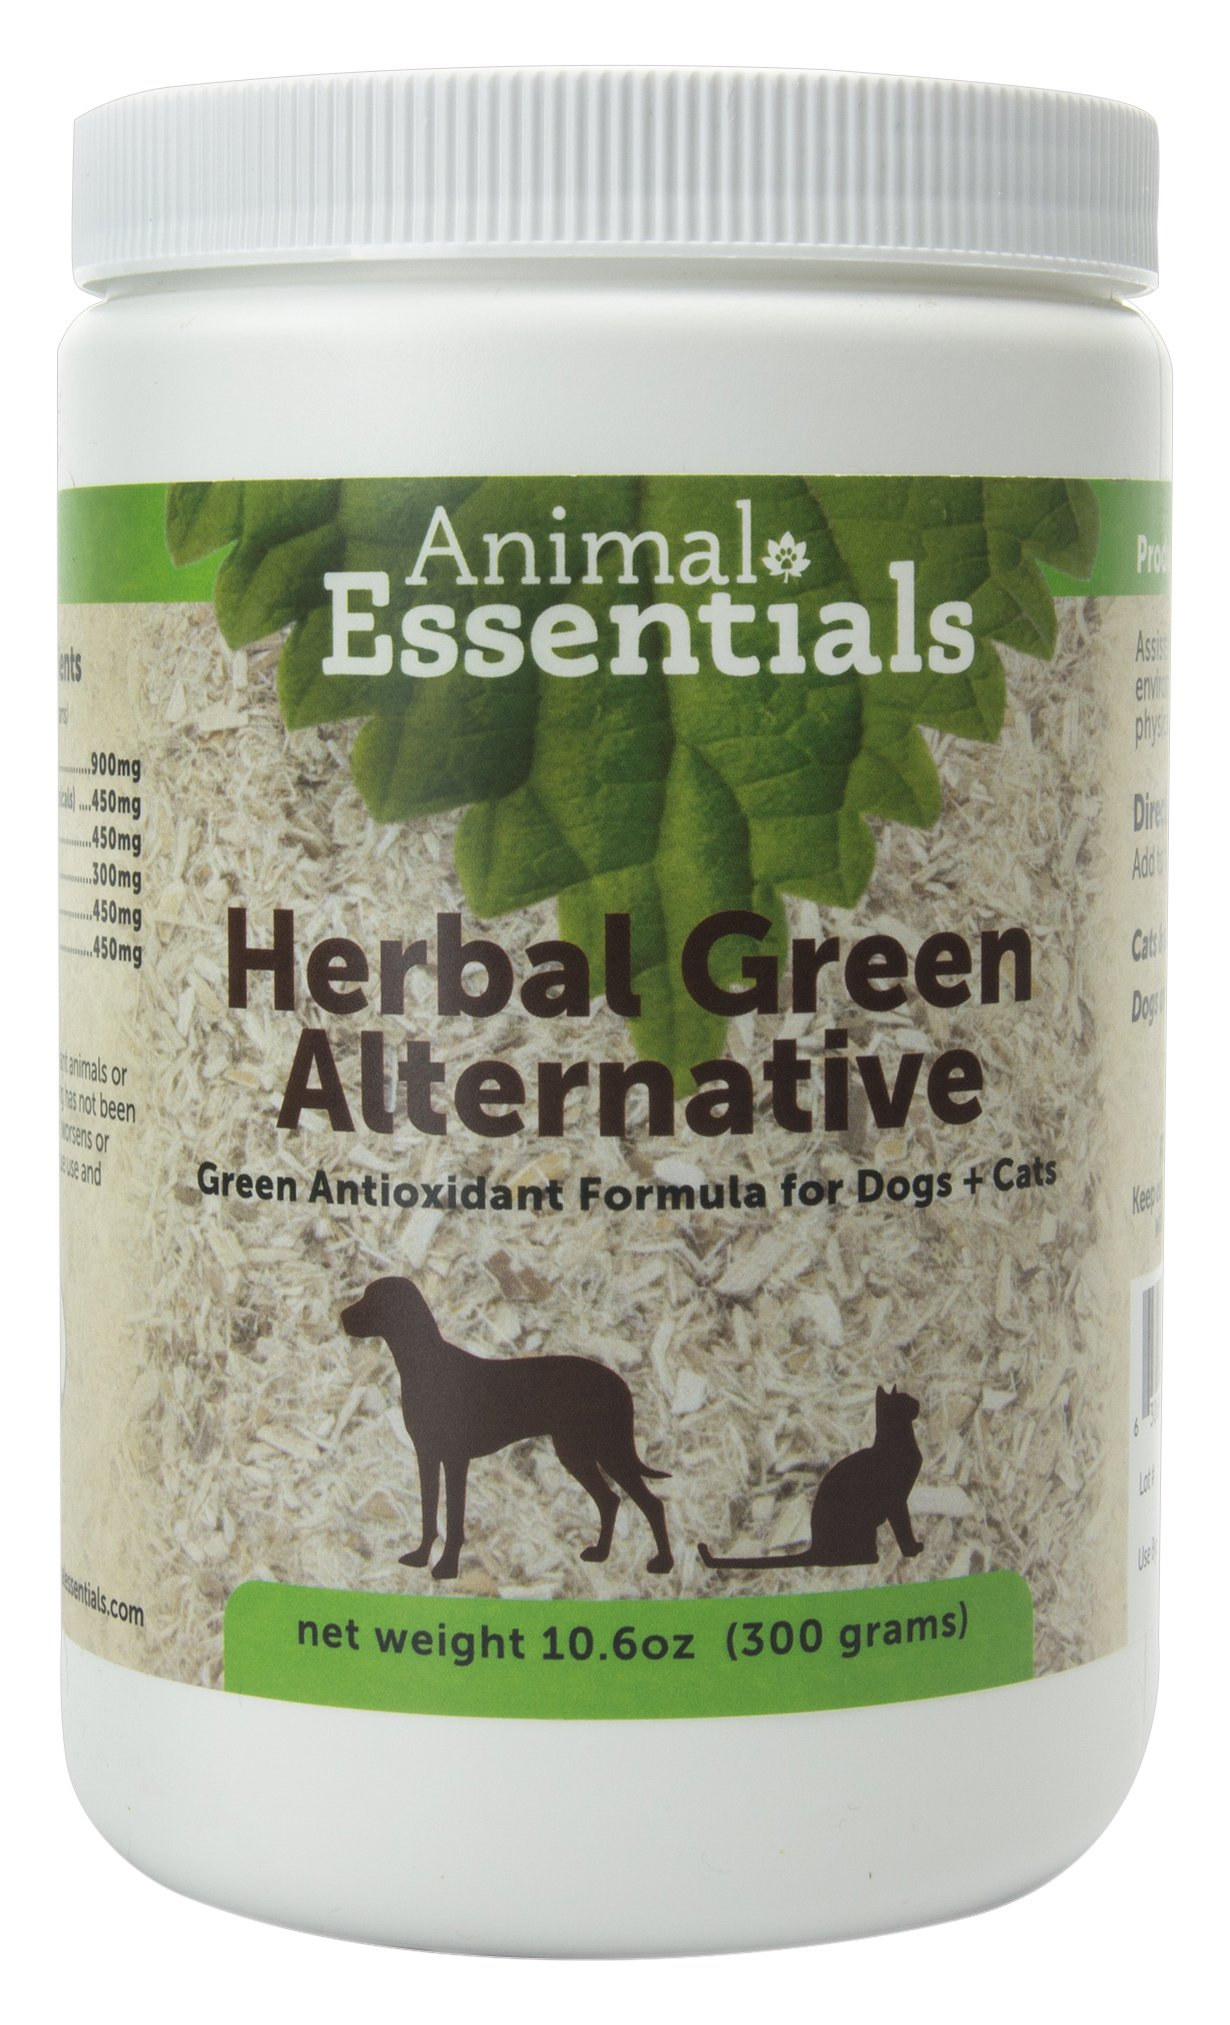 Animal Essentials Herbal Green Alternative Dog and Cat Supplement 10.6 Ounce Jar